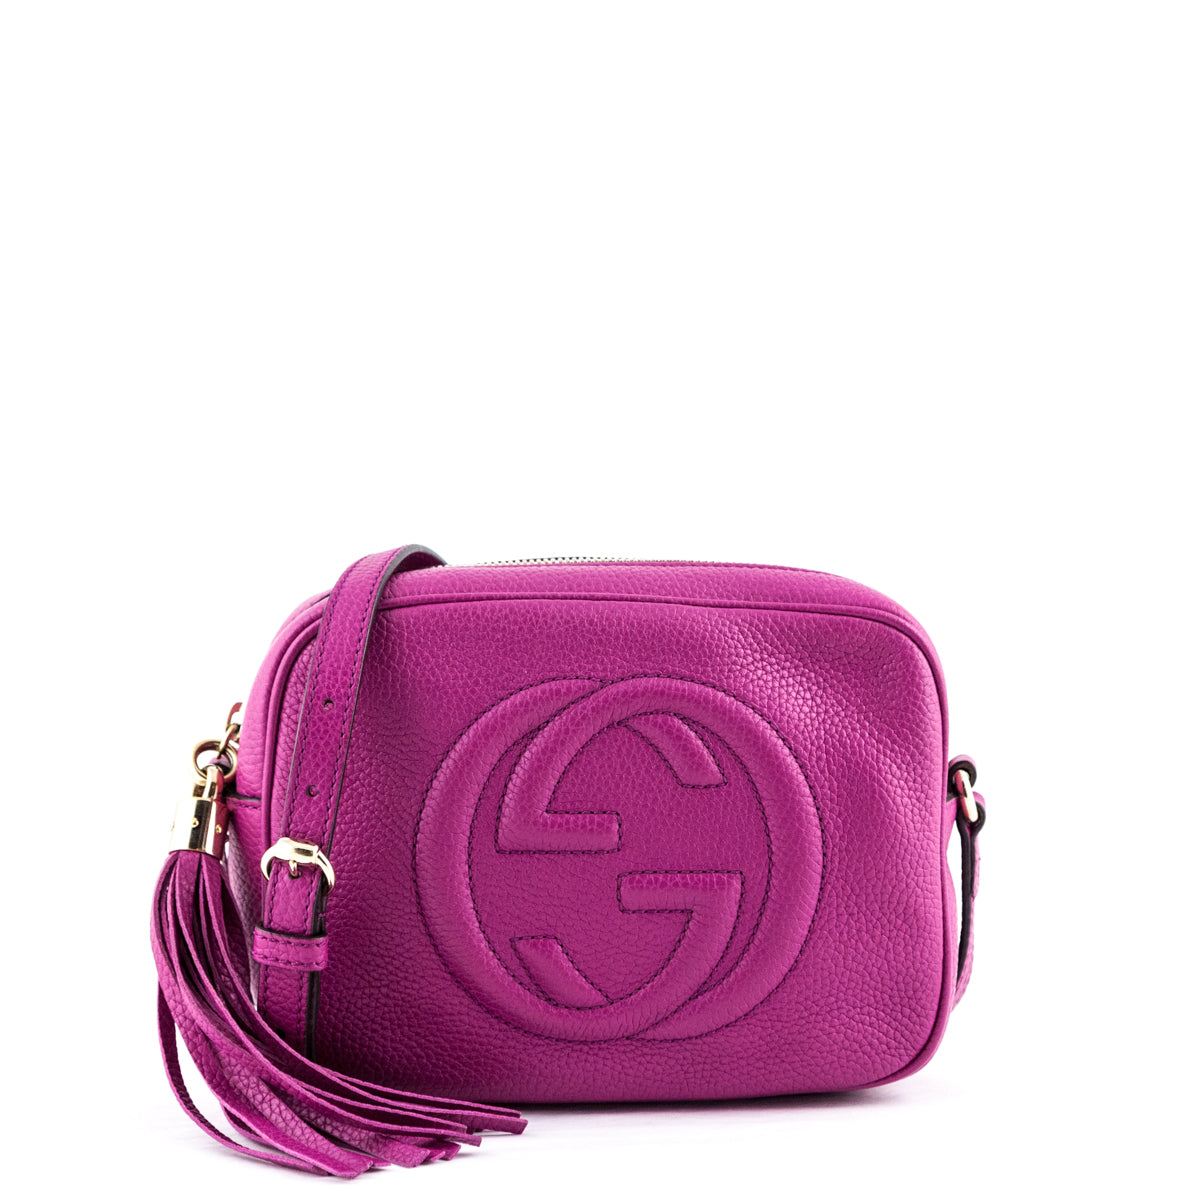 175baa9c5018 Gucci Fuchsia Pink Soho Disco - LOVE that BAG - Preowned Authentic Designer  Handbags ...